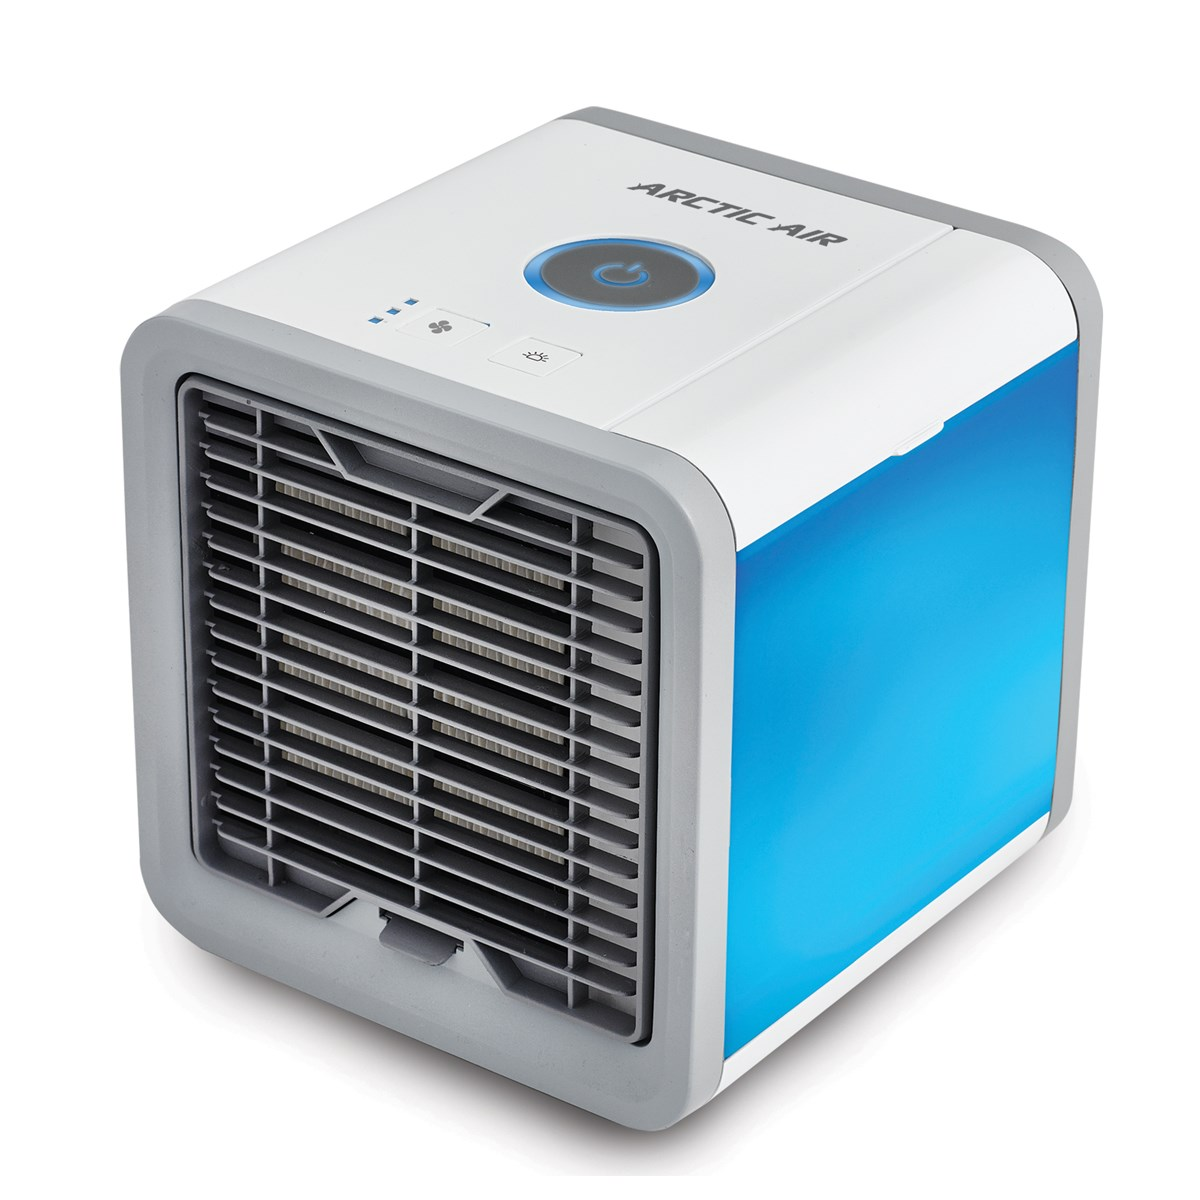 JML Arctic Air Personal Space Cooler